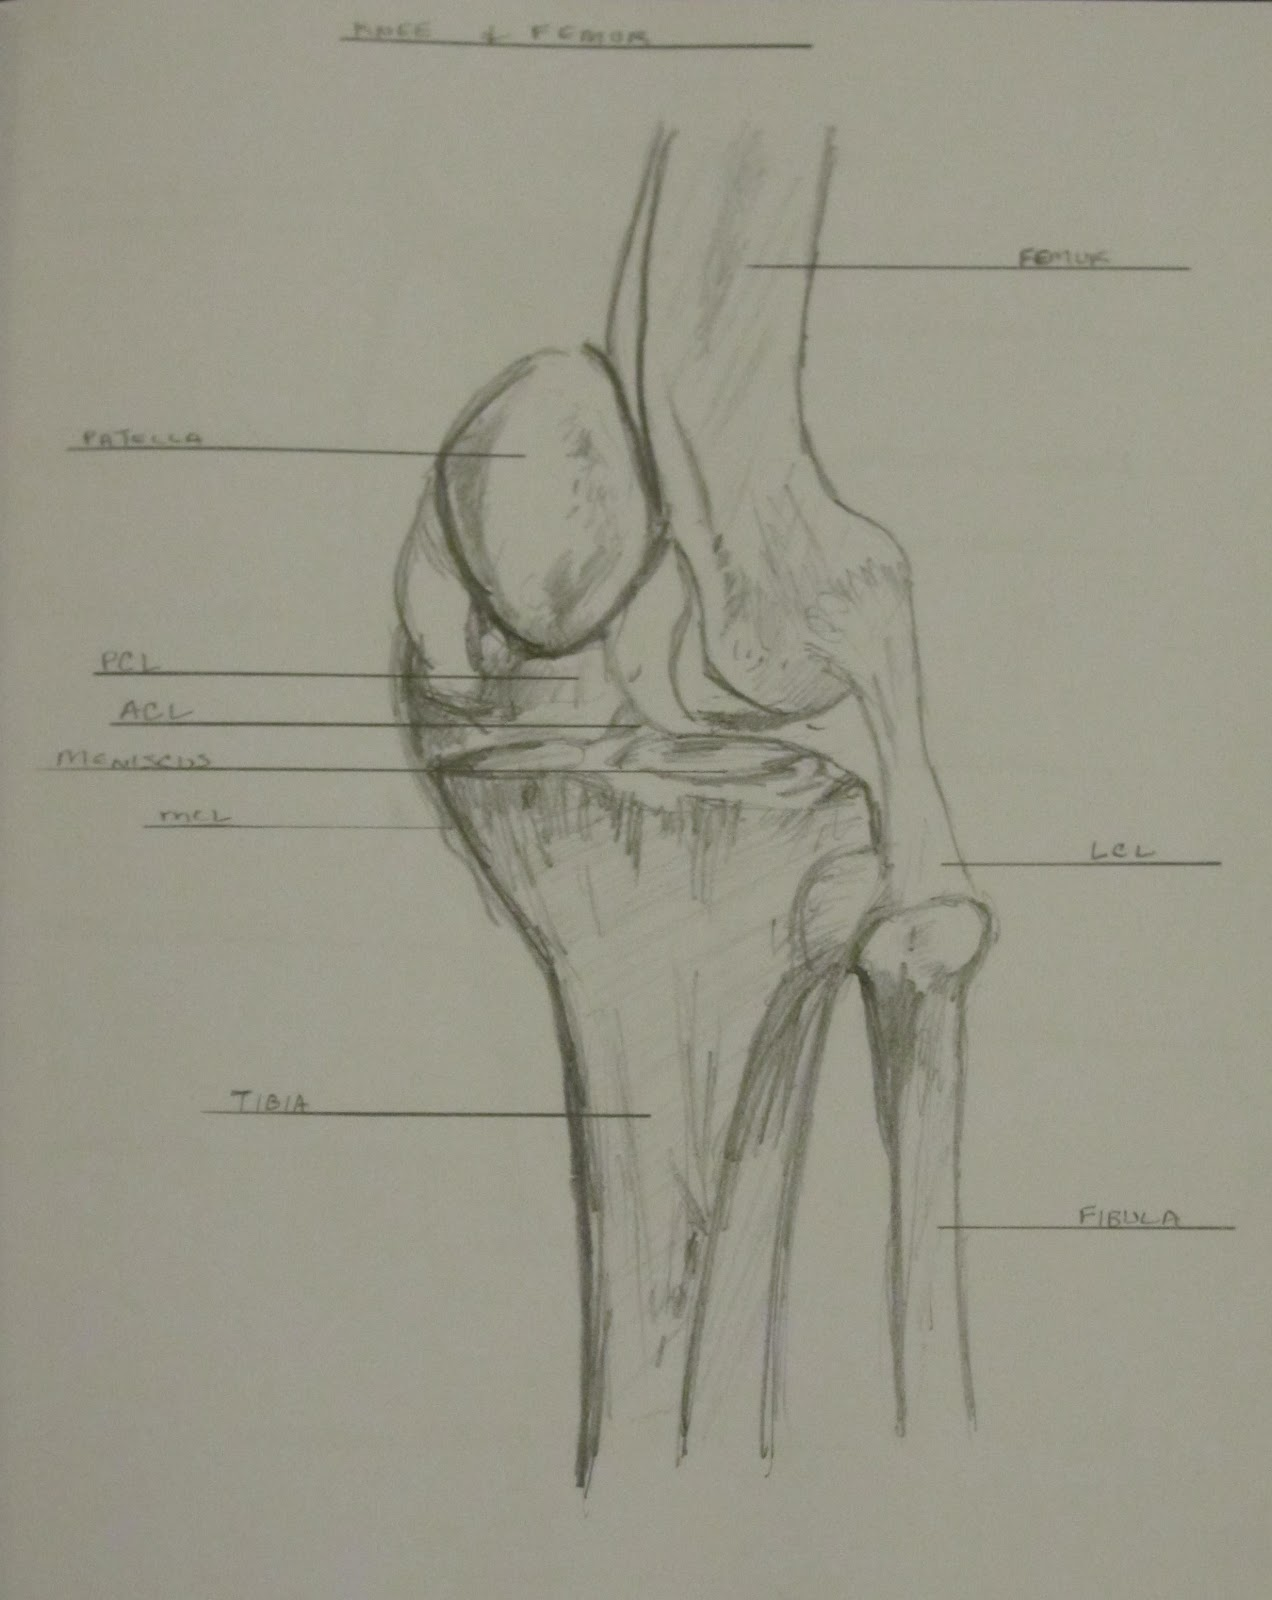 knee+joint+and+tibia art school confidential summer quarter 2012 drawing & anatomy